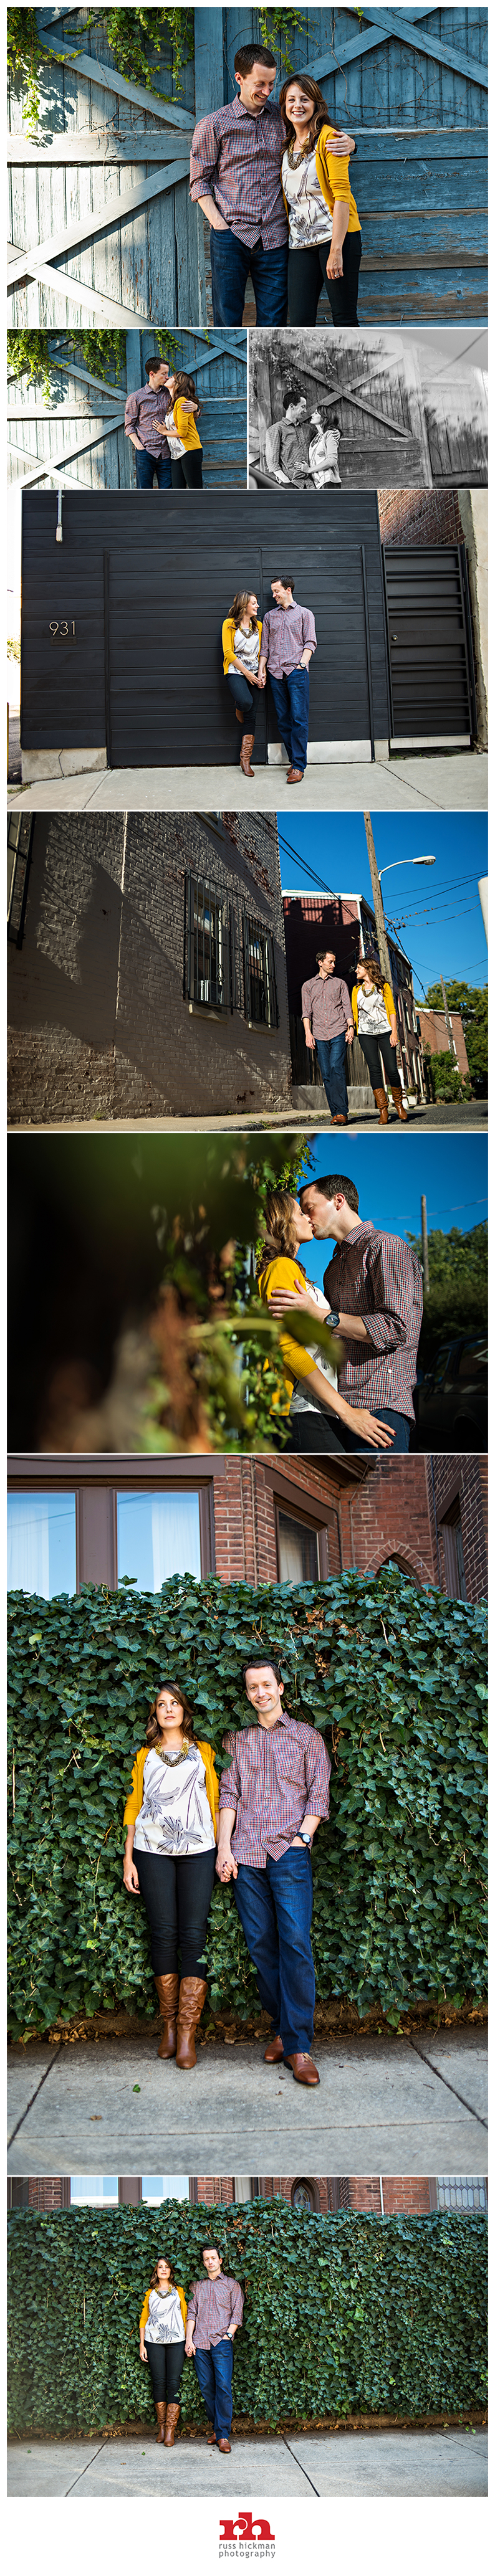 Philadelphia Wedding Photographer AJE03